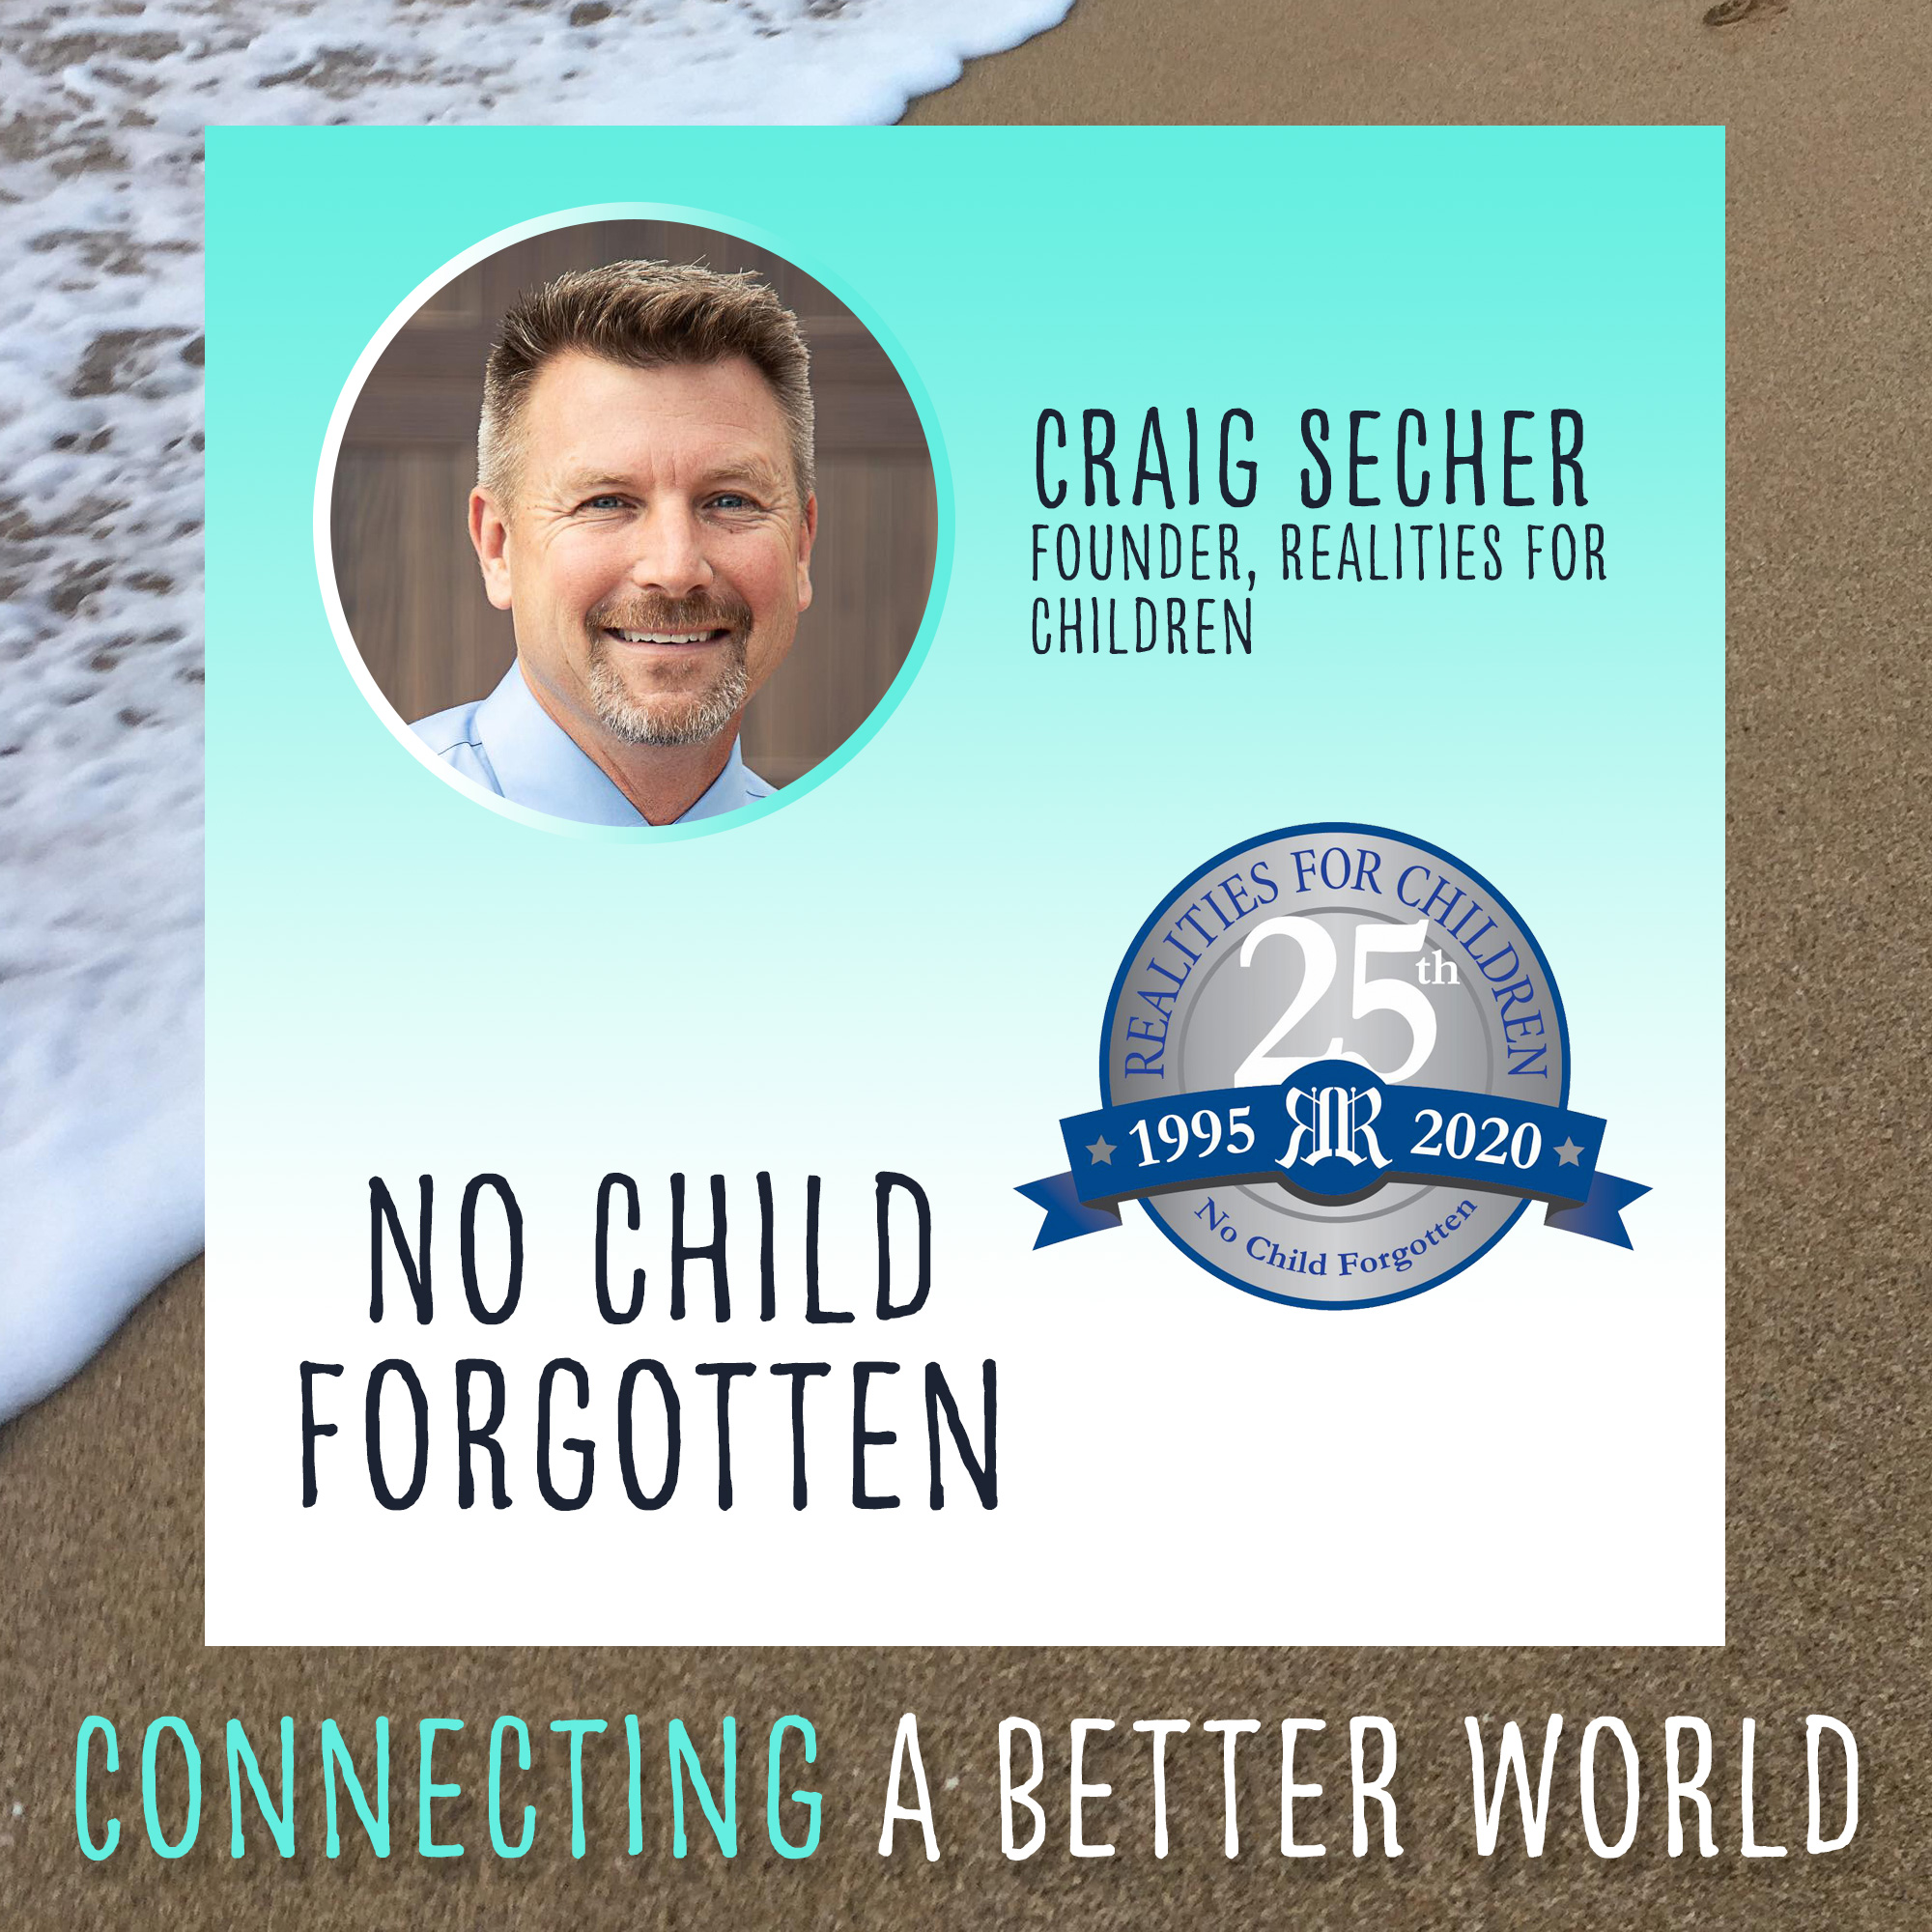 No Child is Forgotten with Realities for Children